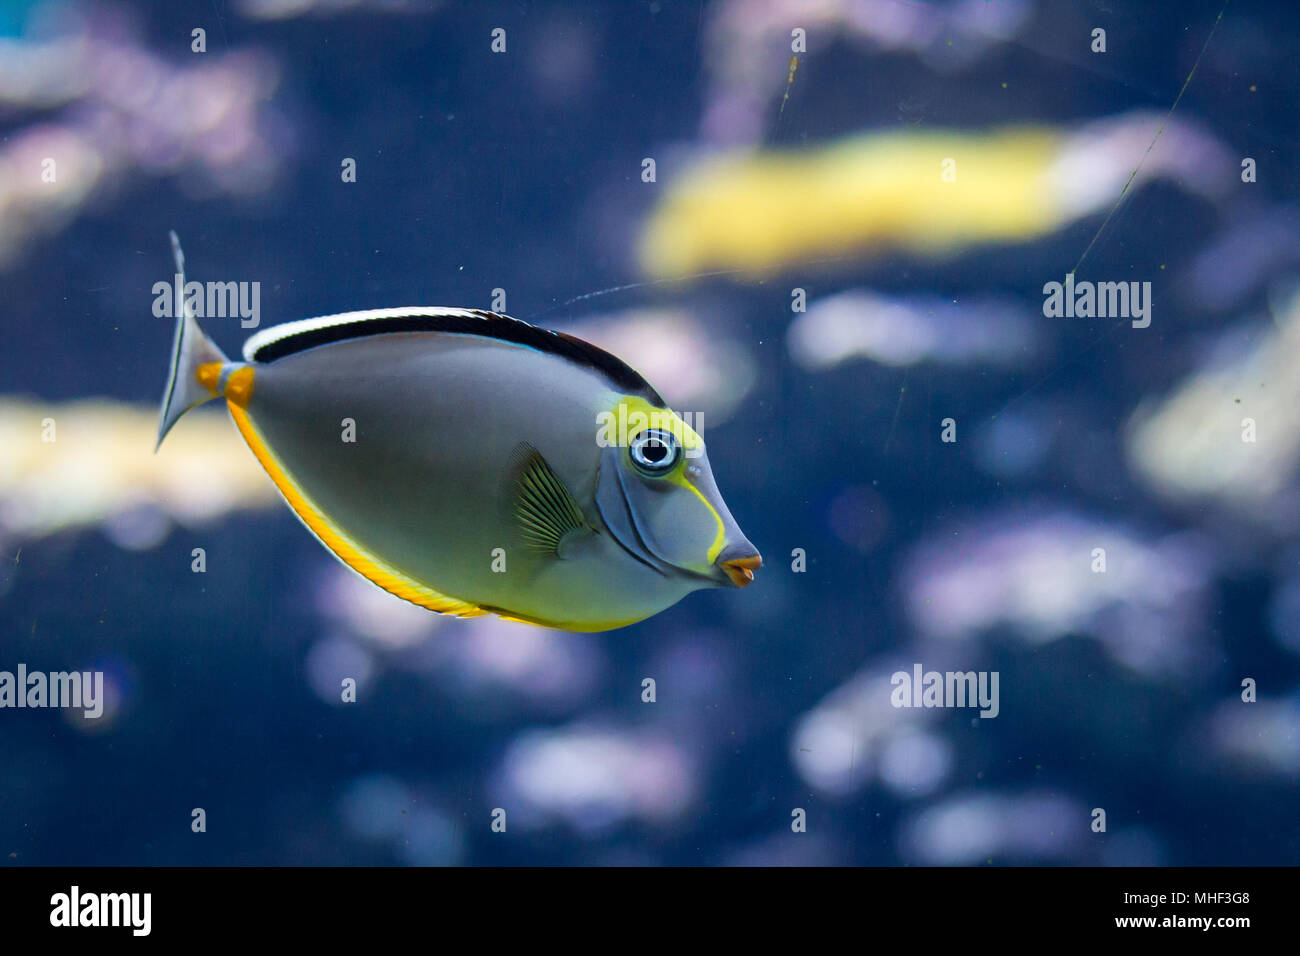 Fish in an aquarium - Stock Image